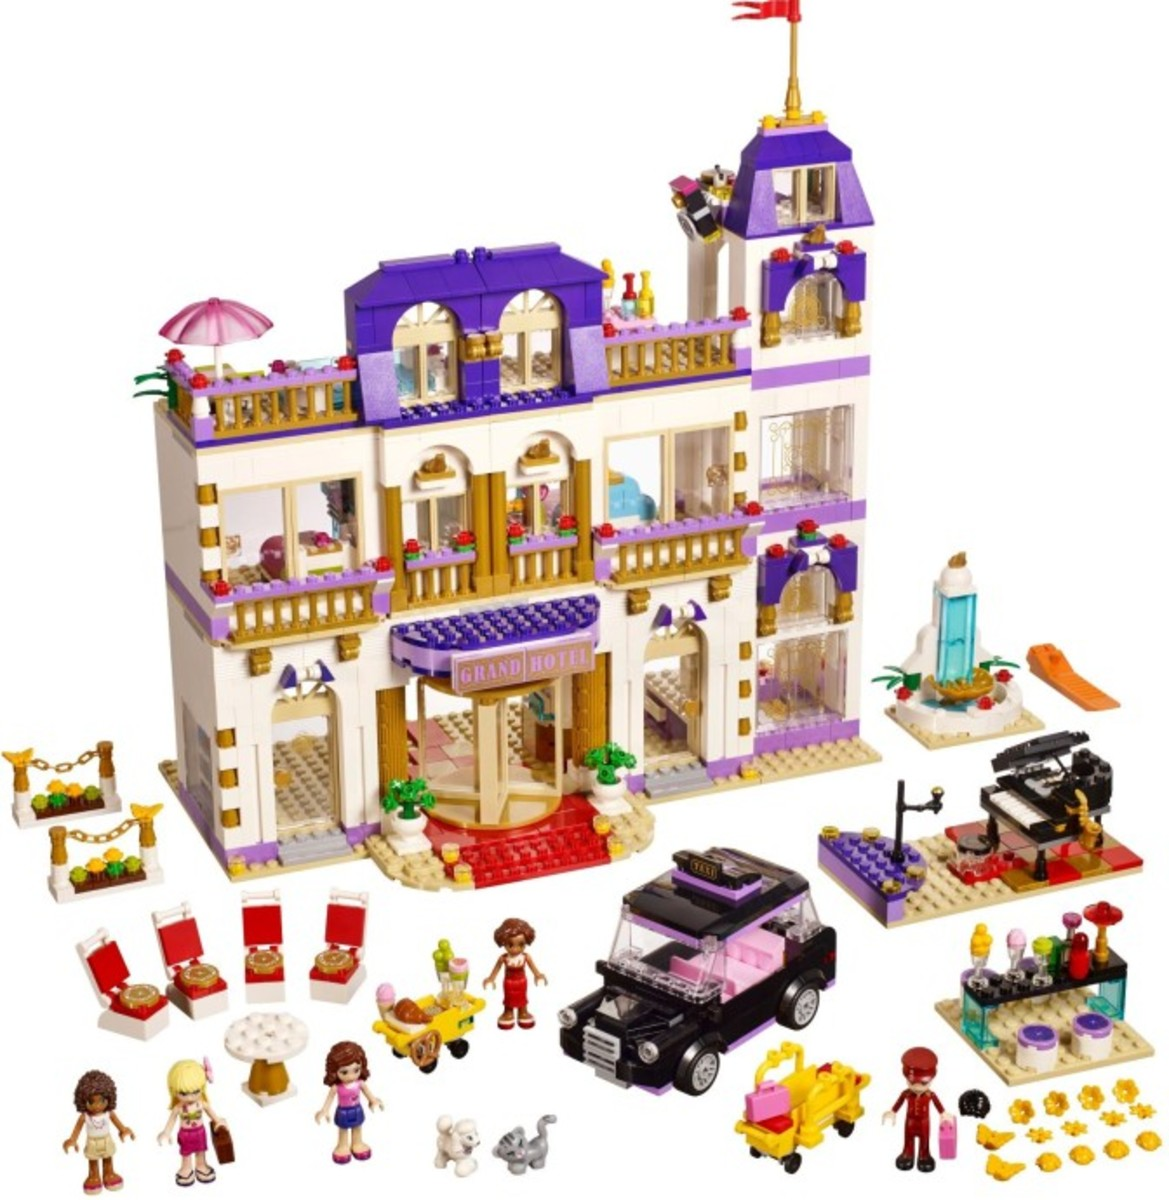 Lego Friends: ALL of the Heartlake City Sets for Girls! | HubPages